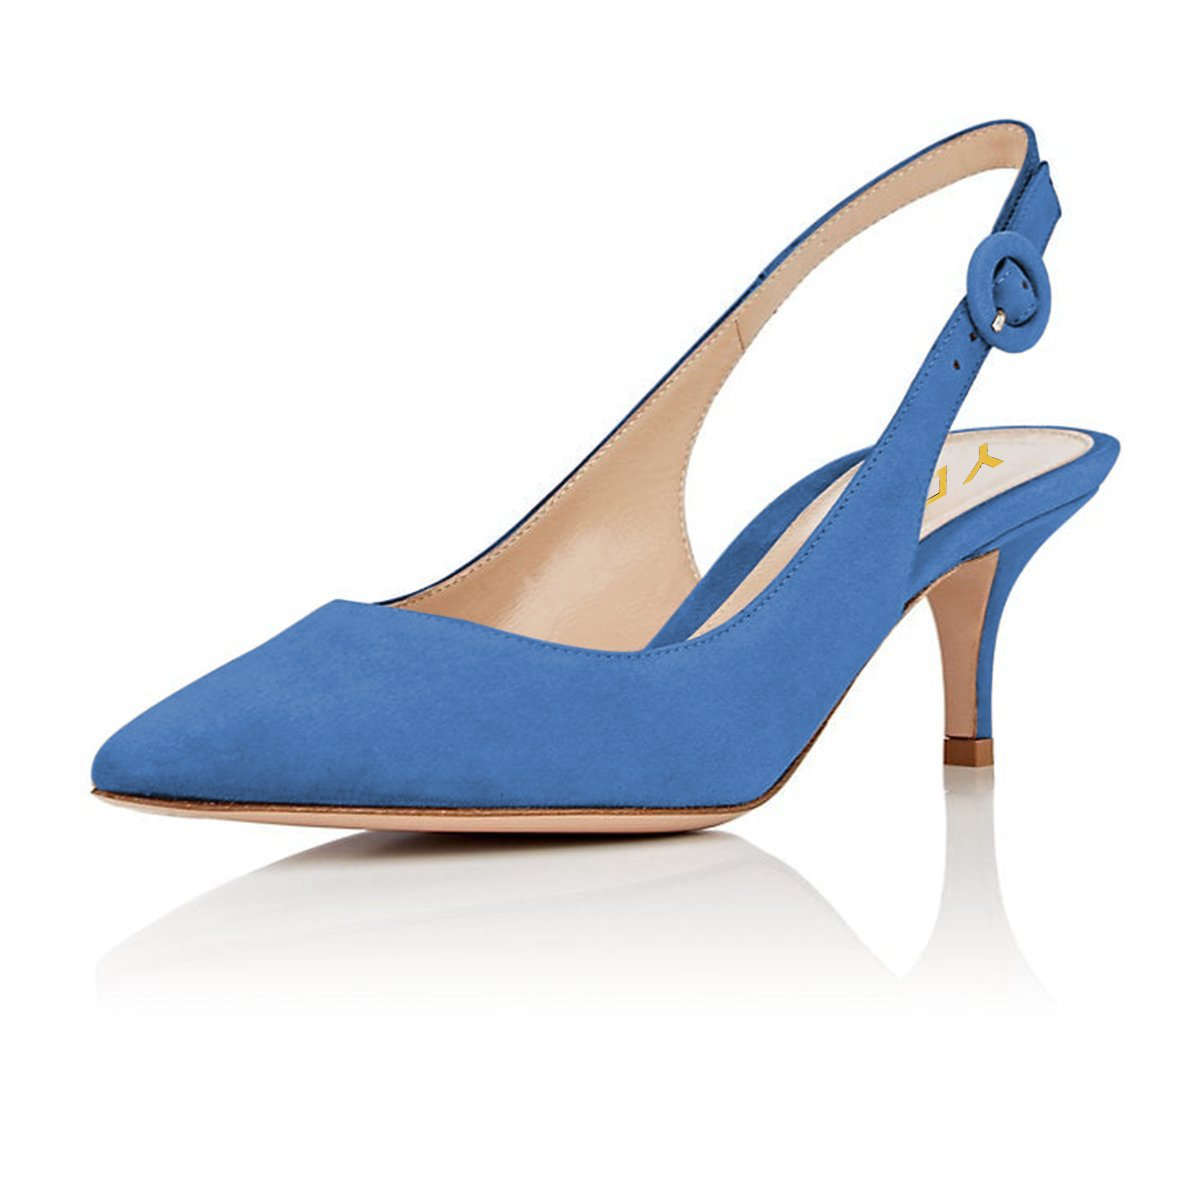 YDN Womens Kitten Low Heels Office Pumps Pointed Toe Leopard Print Comfy Shoes with Slingback Blue 9.5